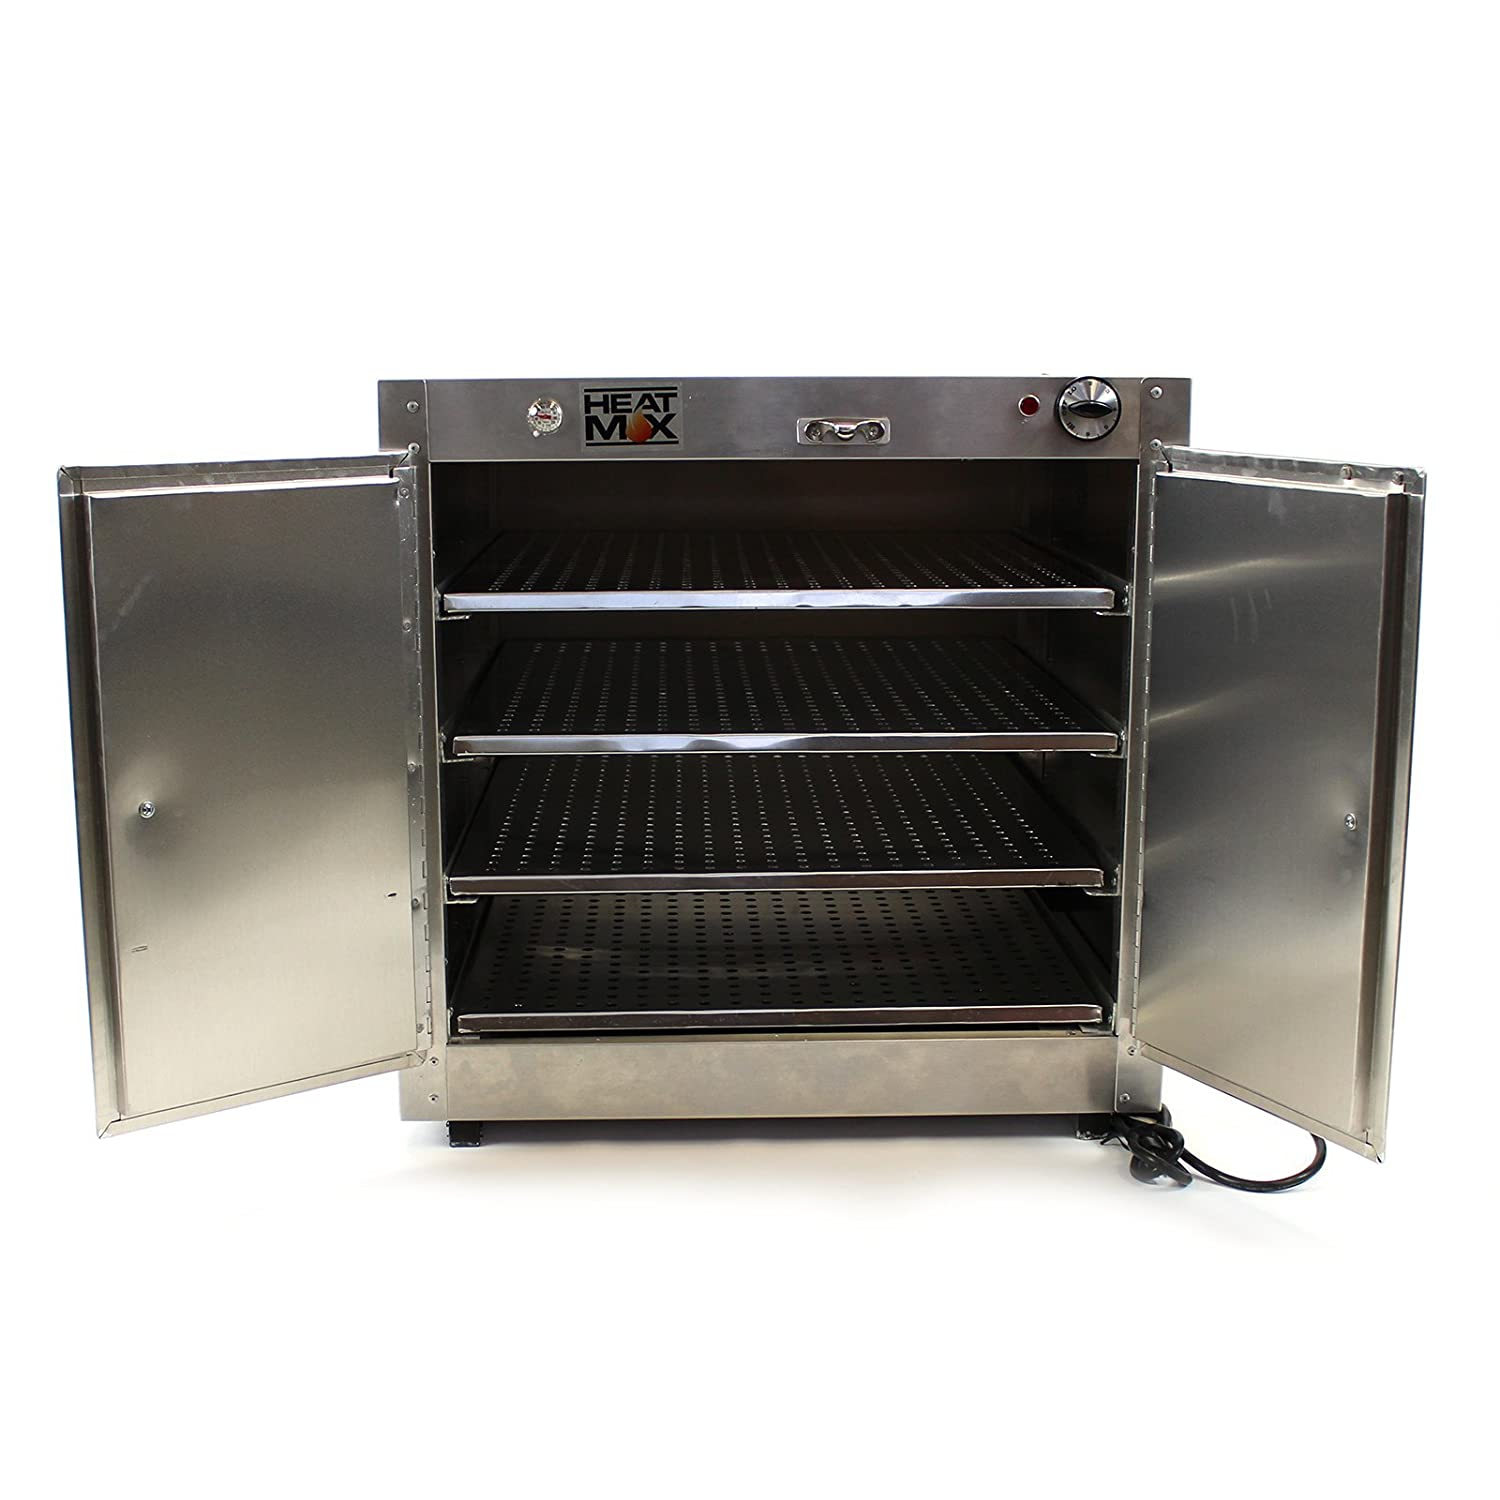 mercial catering hot box proofer warmer food pizza